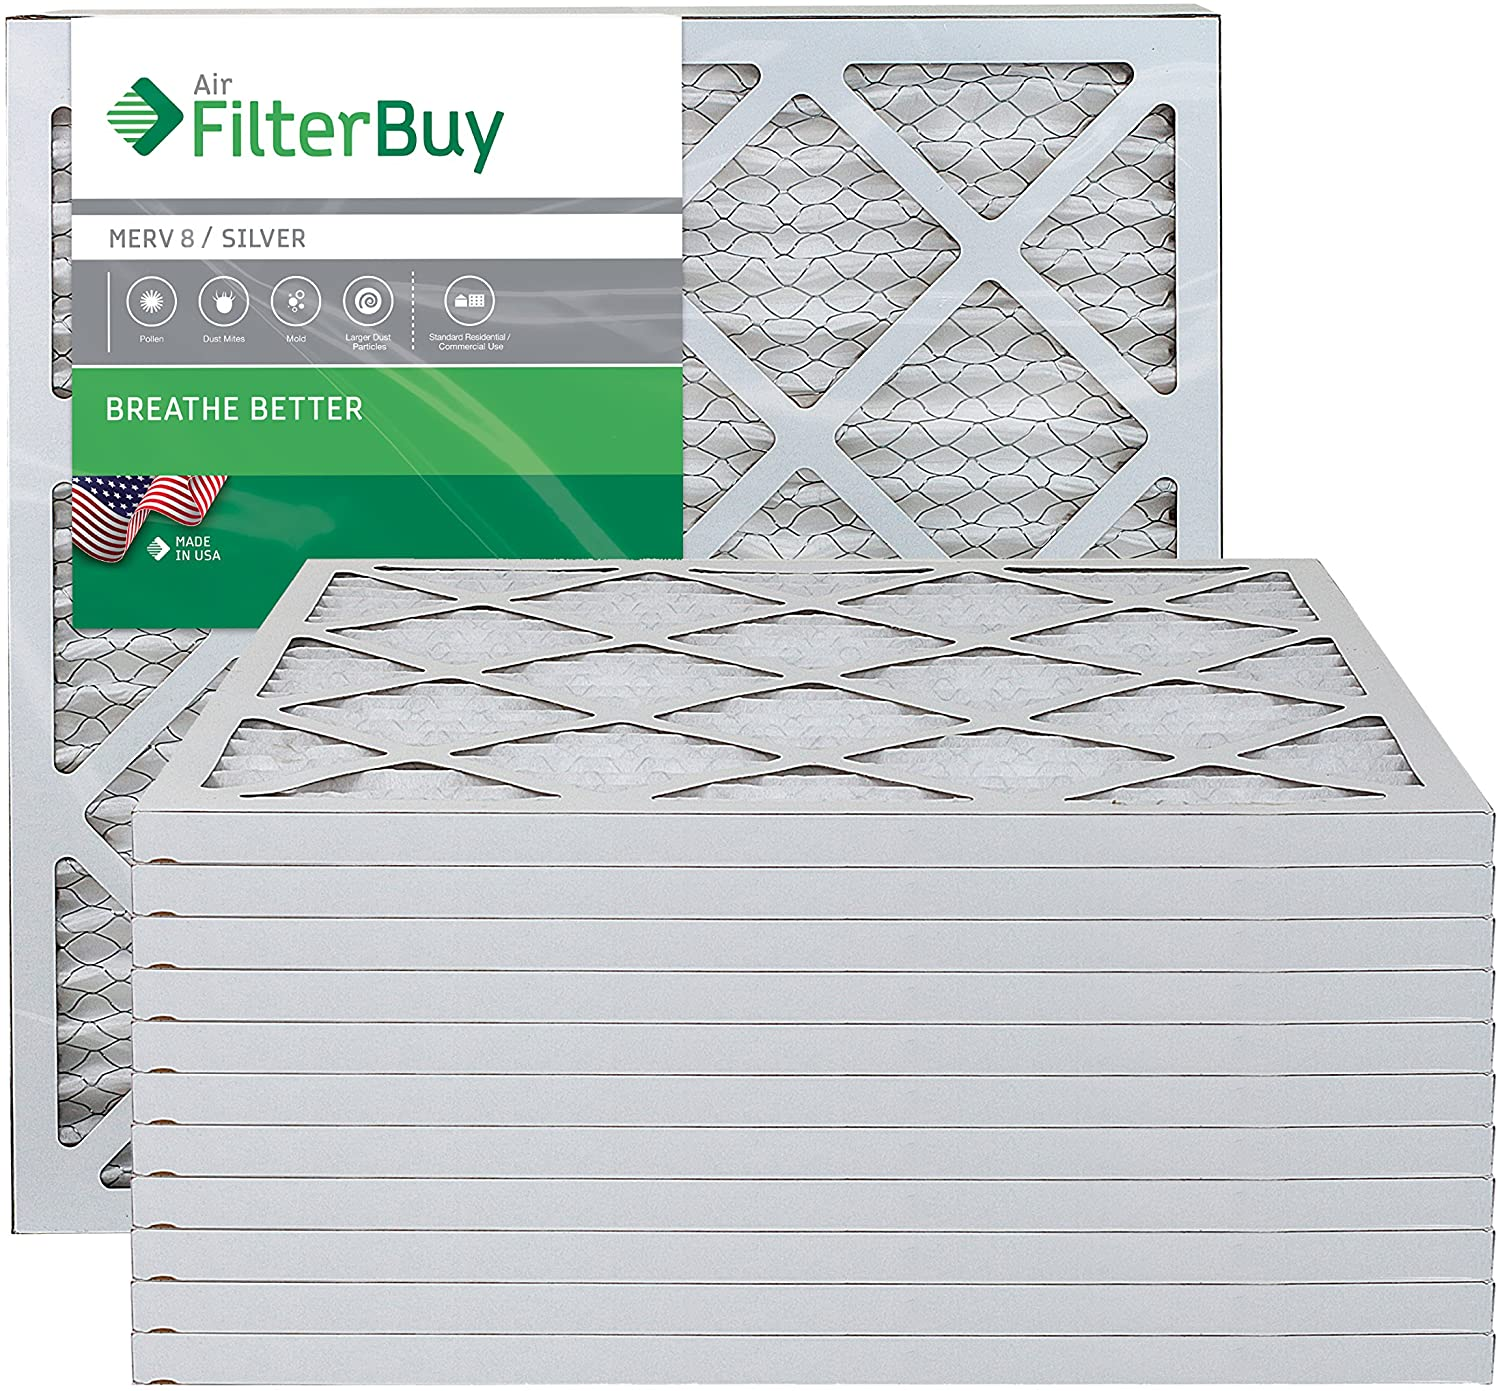 FilterBuy 18x22x1 MERV 8 Pleated AC Furnace Air Filter, (Pack of 12 Filters), 18x22x1 – Silver